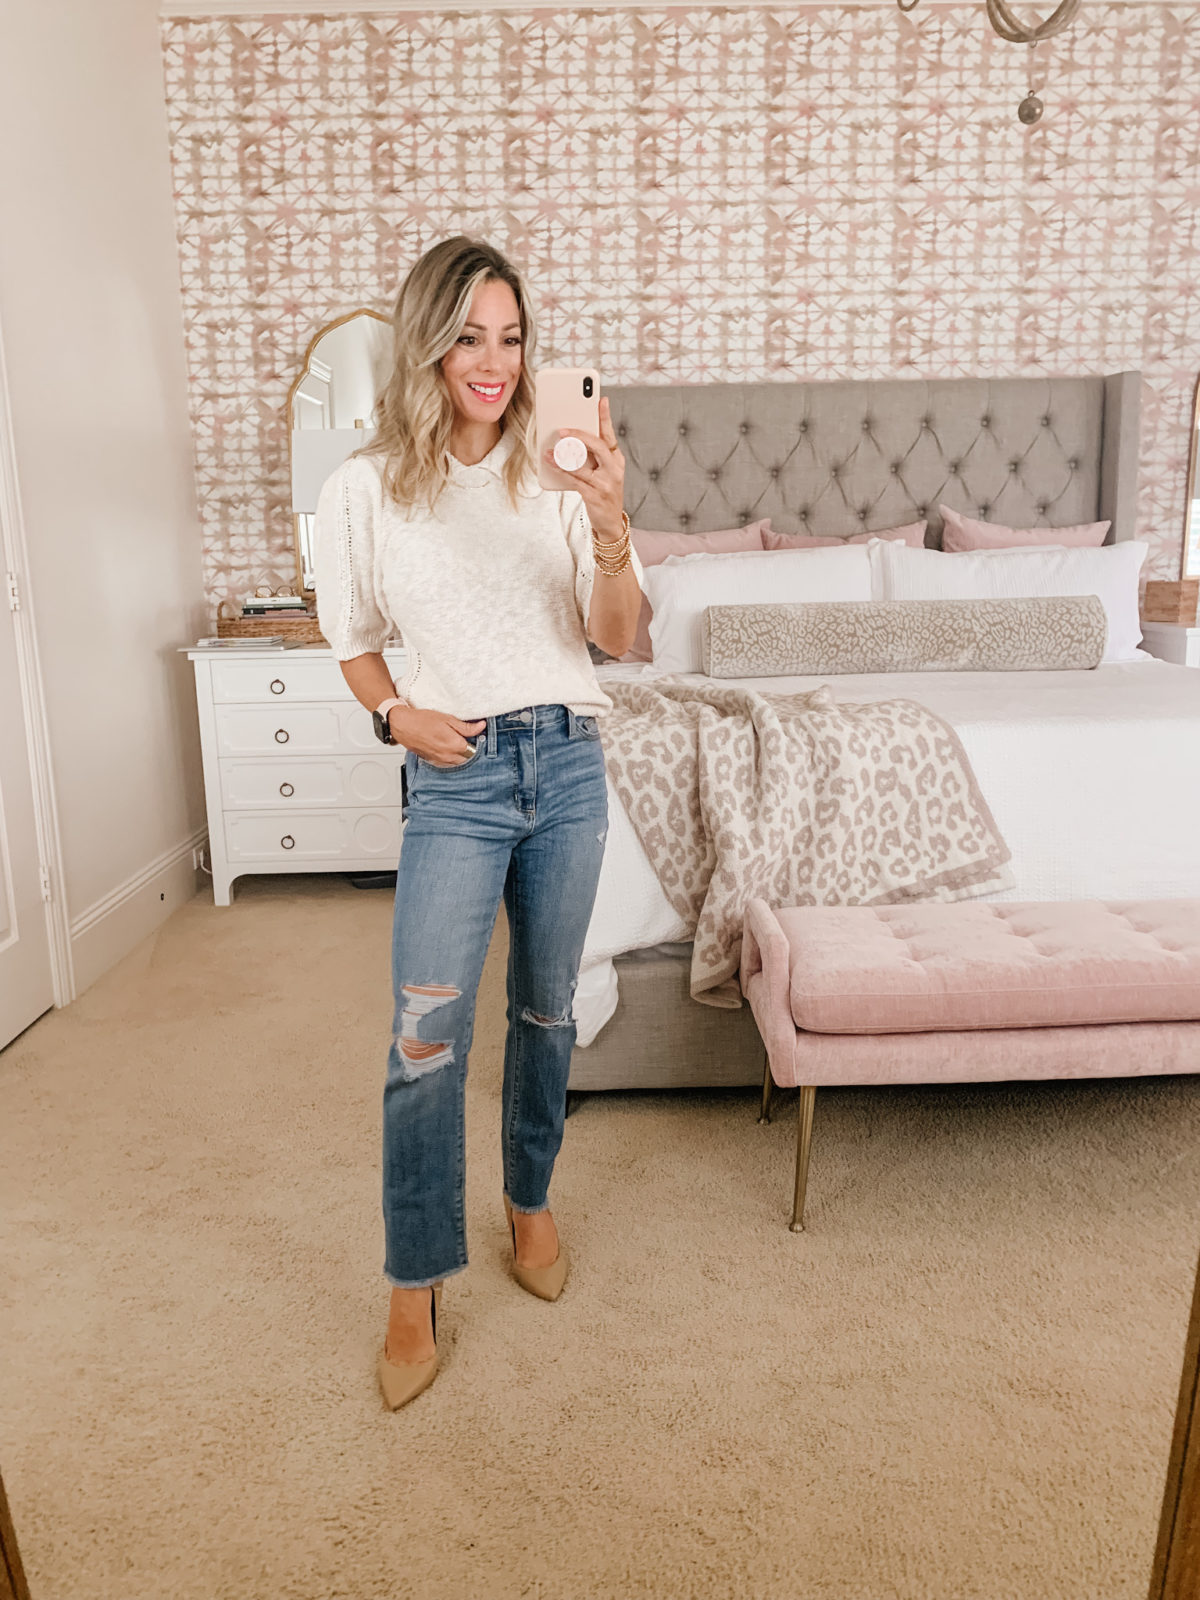 Target Fashion, Collard Sweater and Jeans with Heels